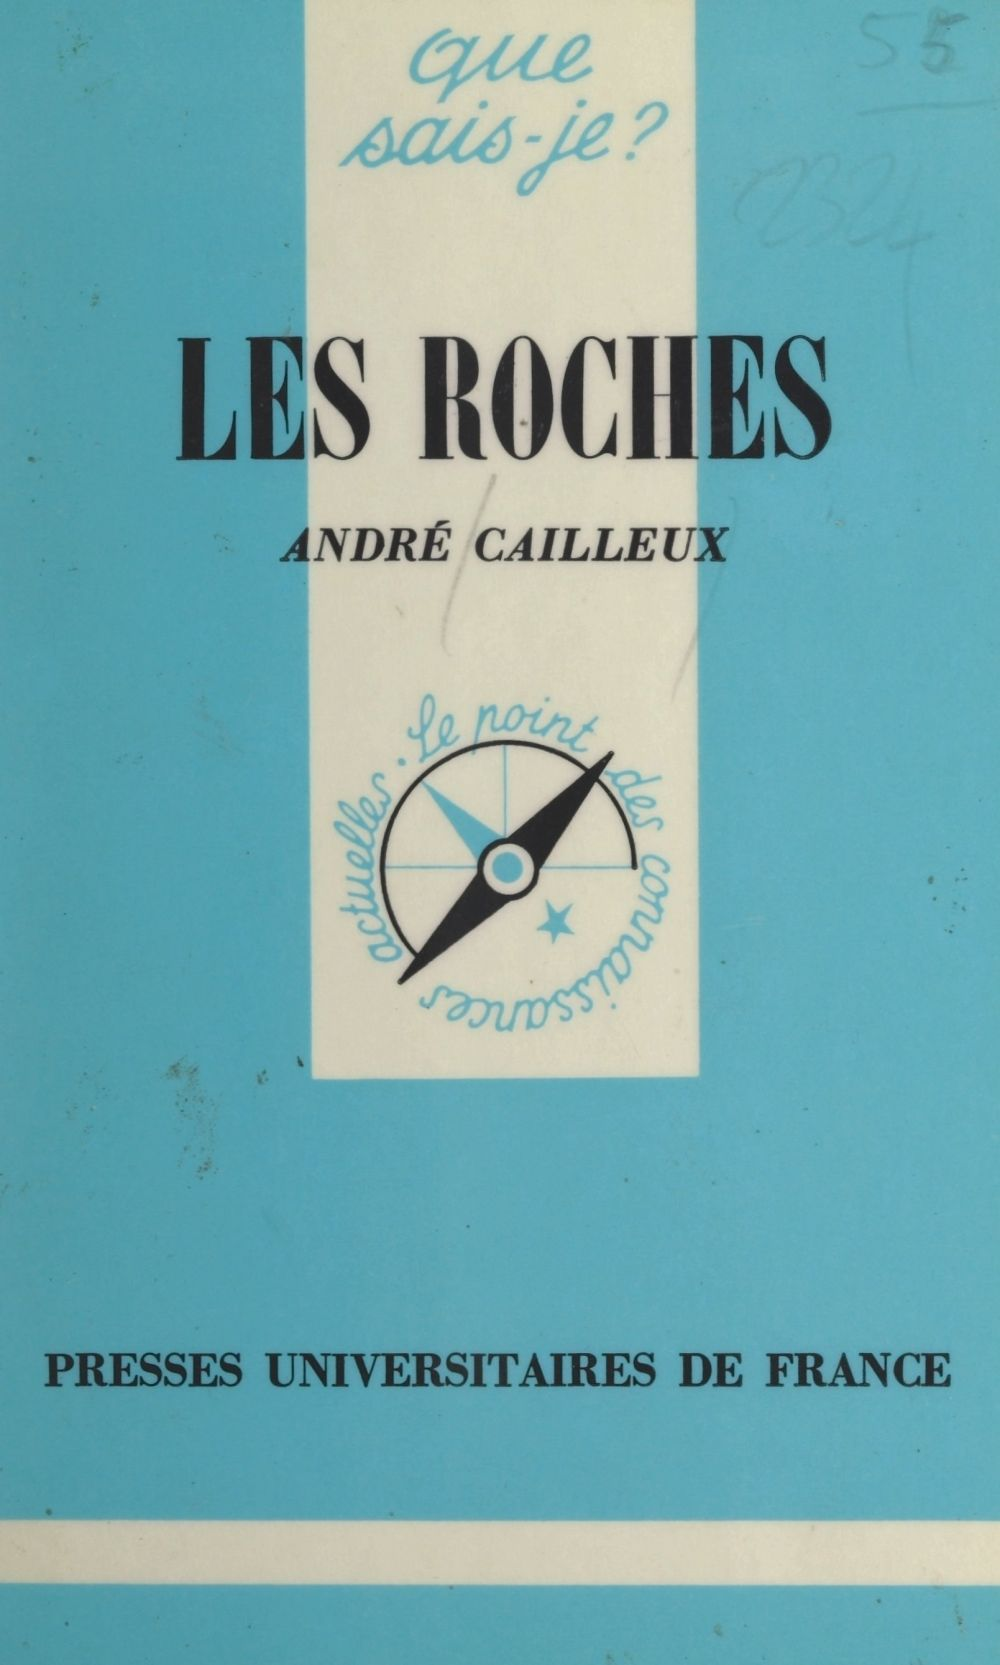 Les roches